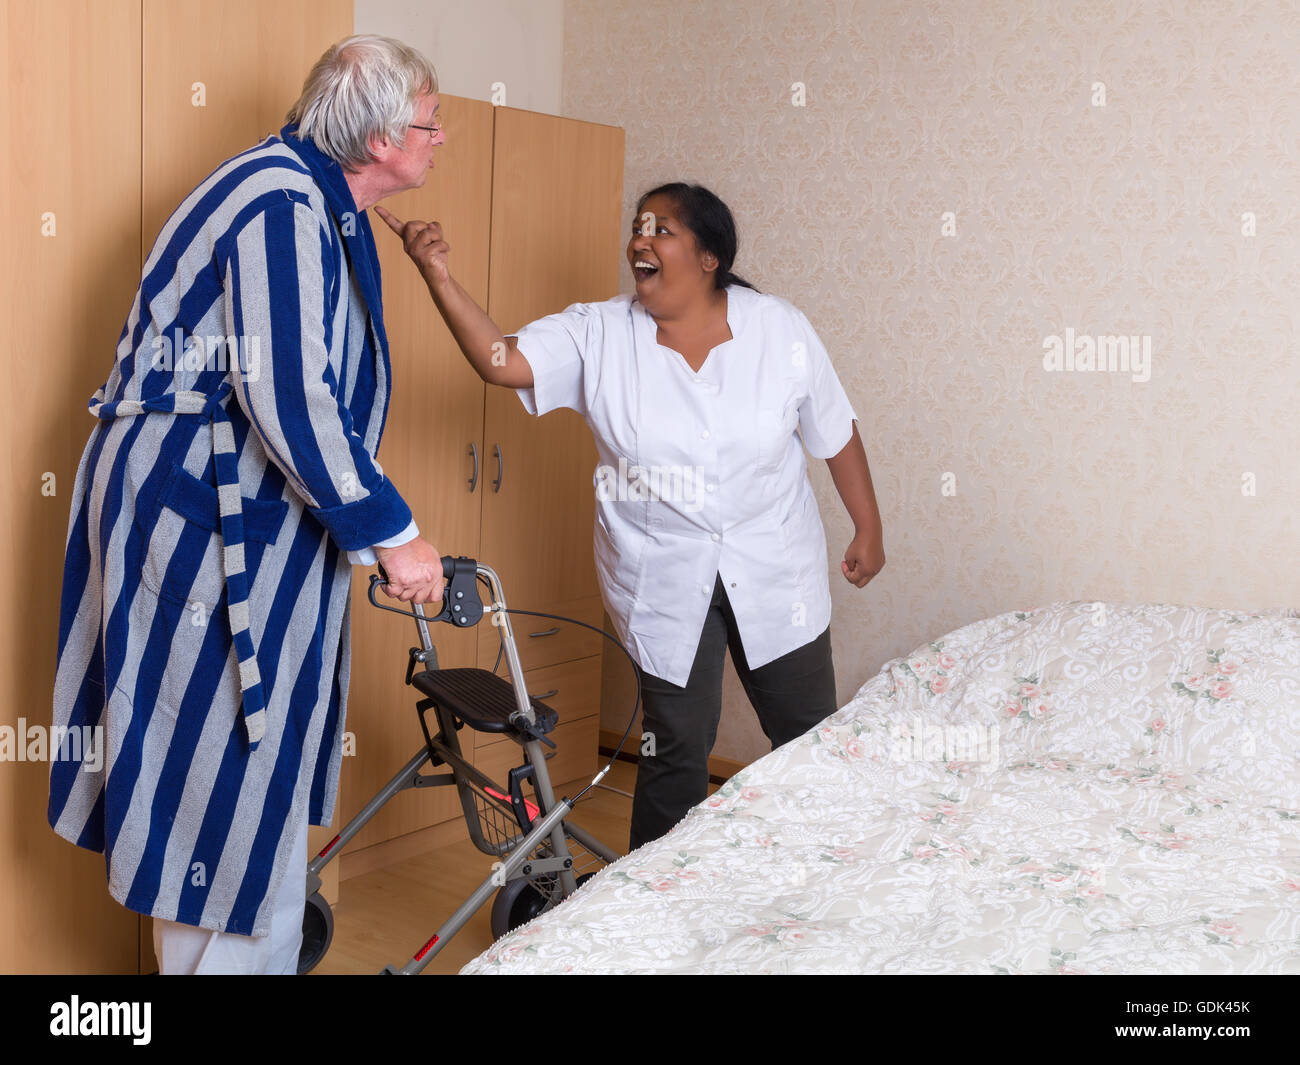 Funny scene of an elderly man having a discussion with his nurse Stock Photo